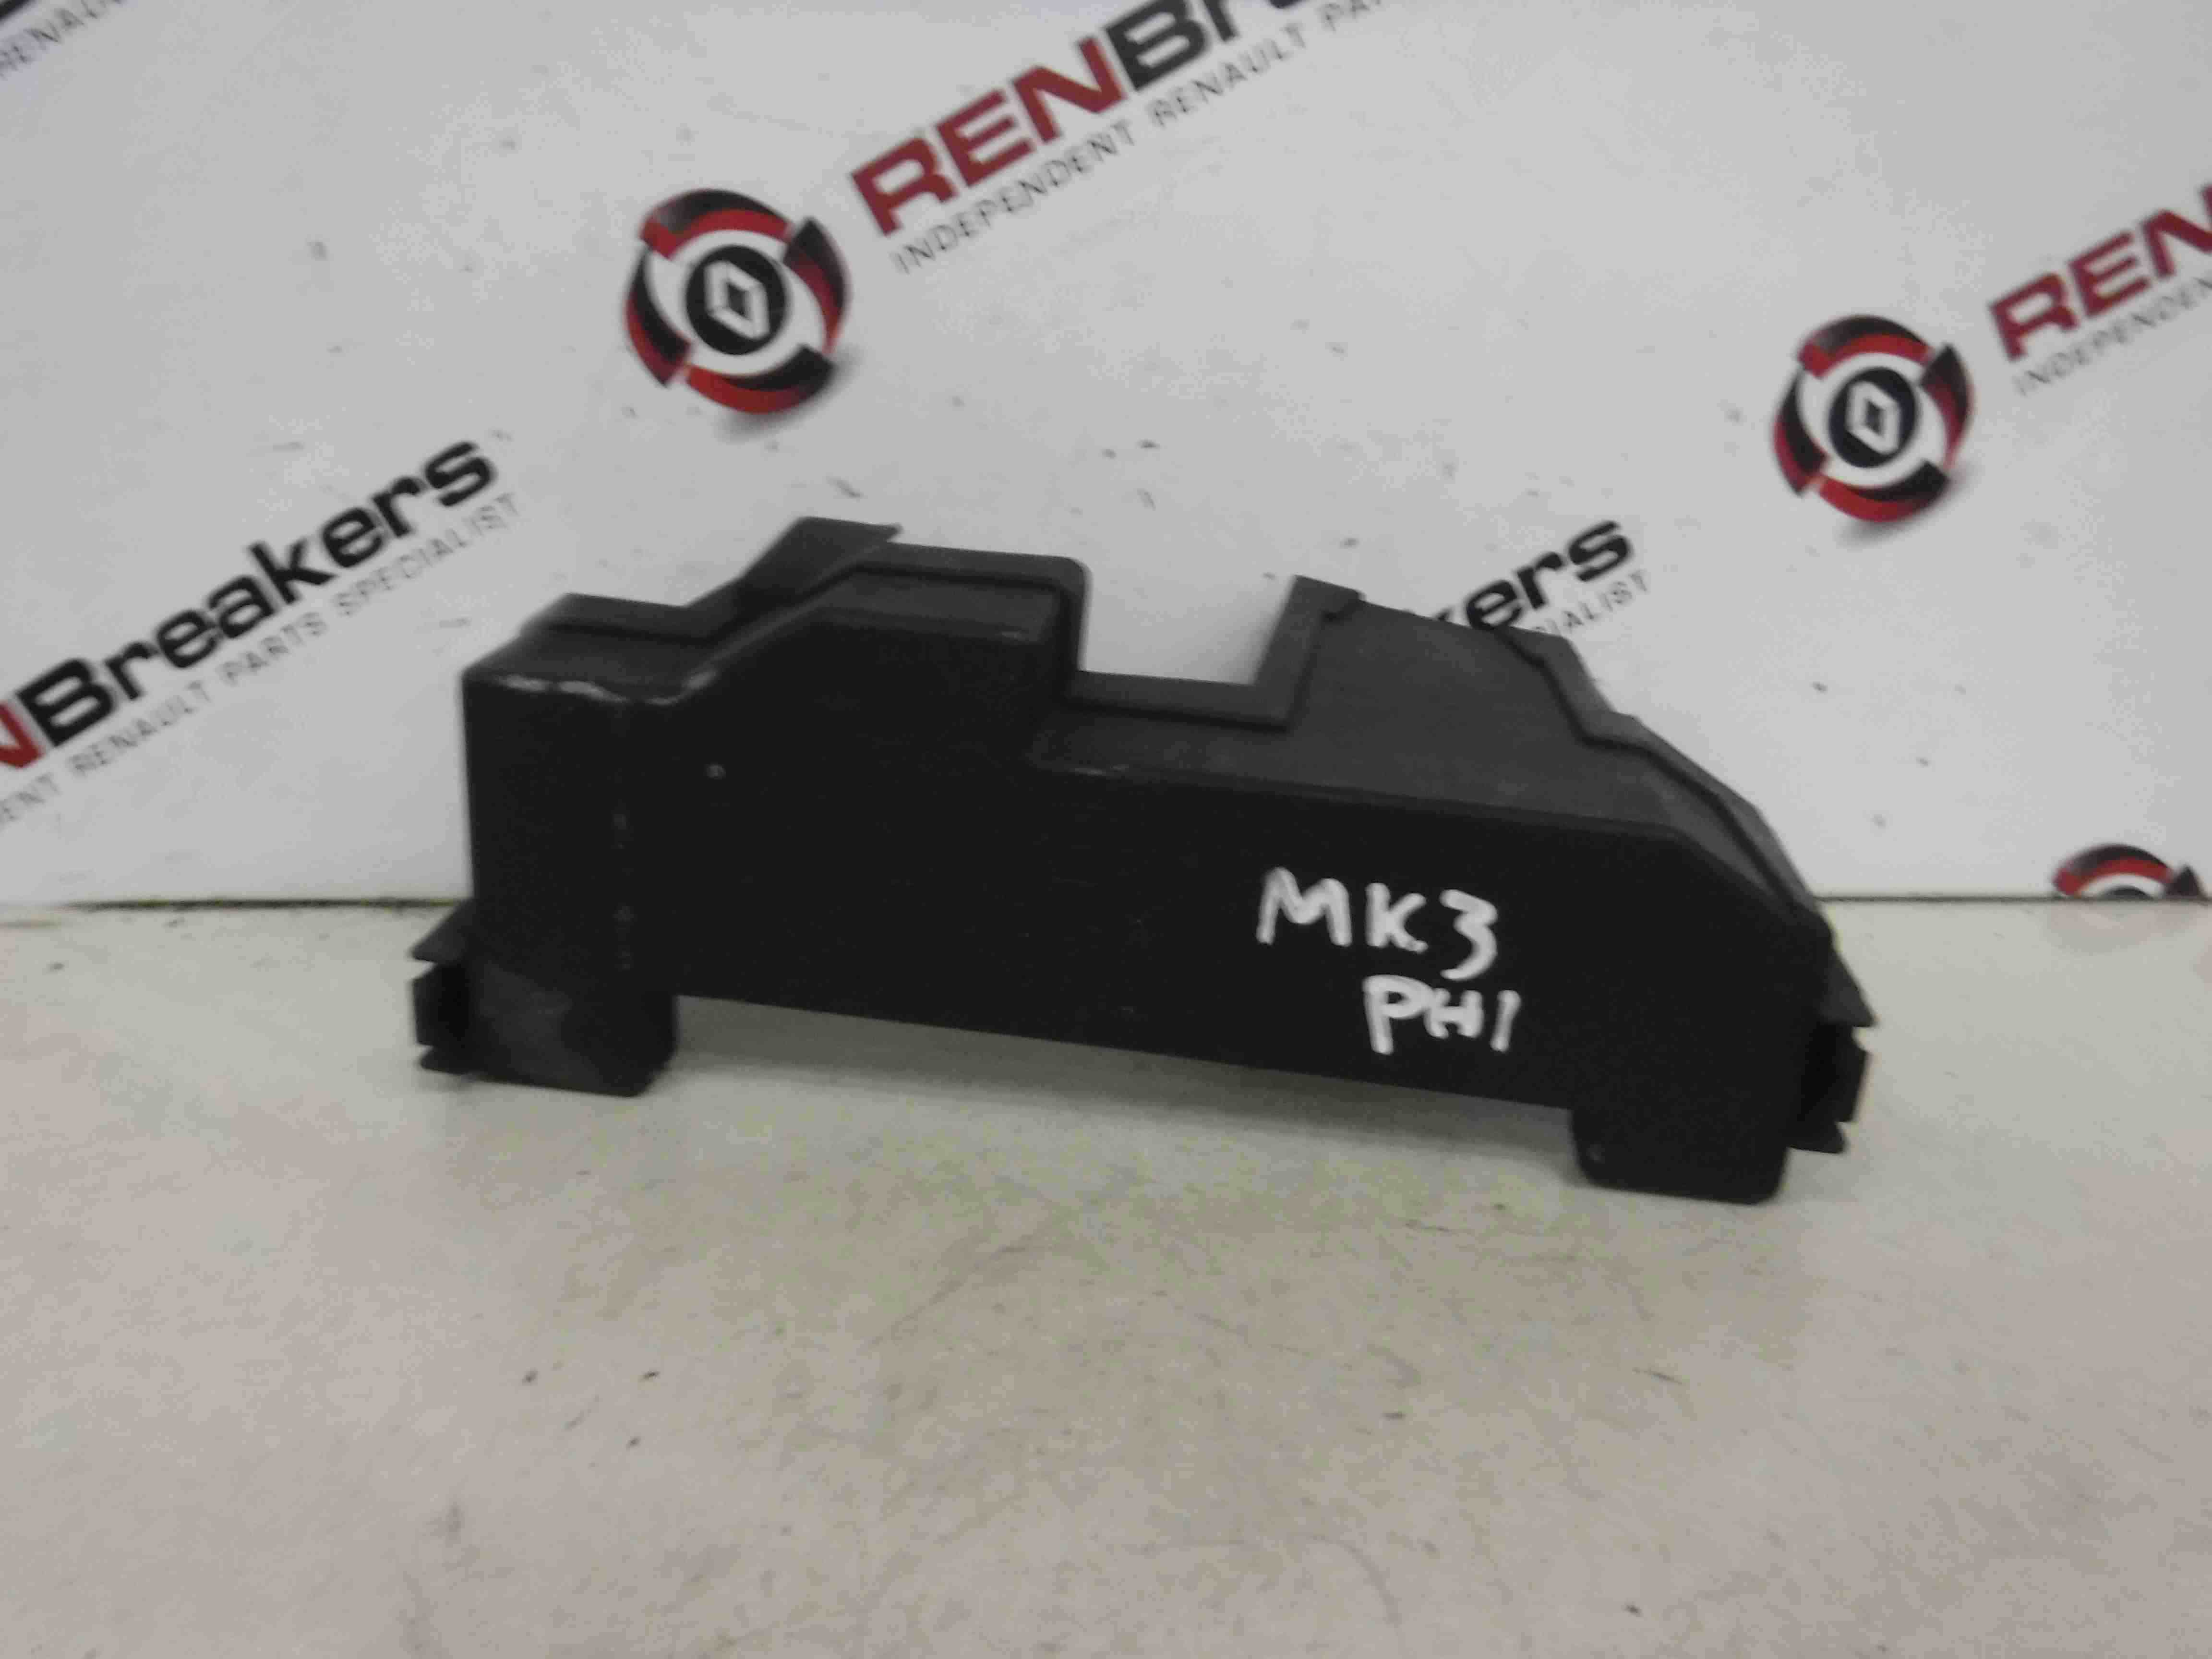 Renault Clio Mk3 2005-2009 Fuse Box Cover Lid - Store - Renault Breakers